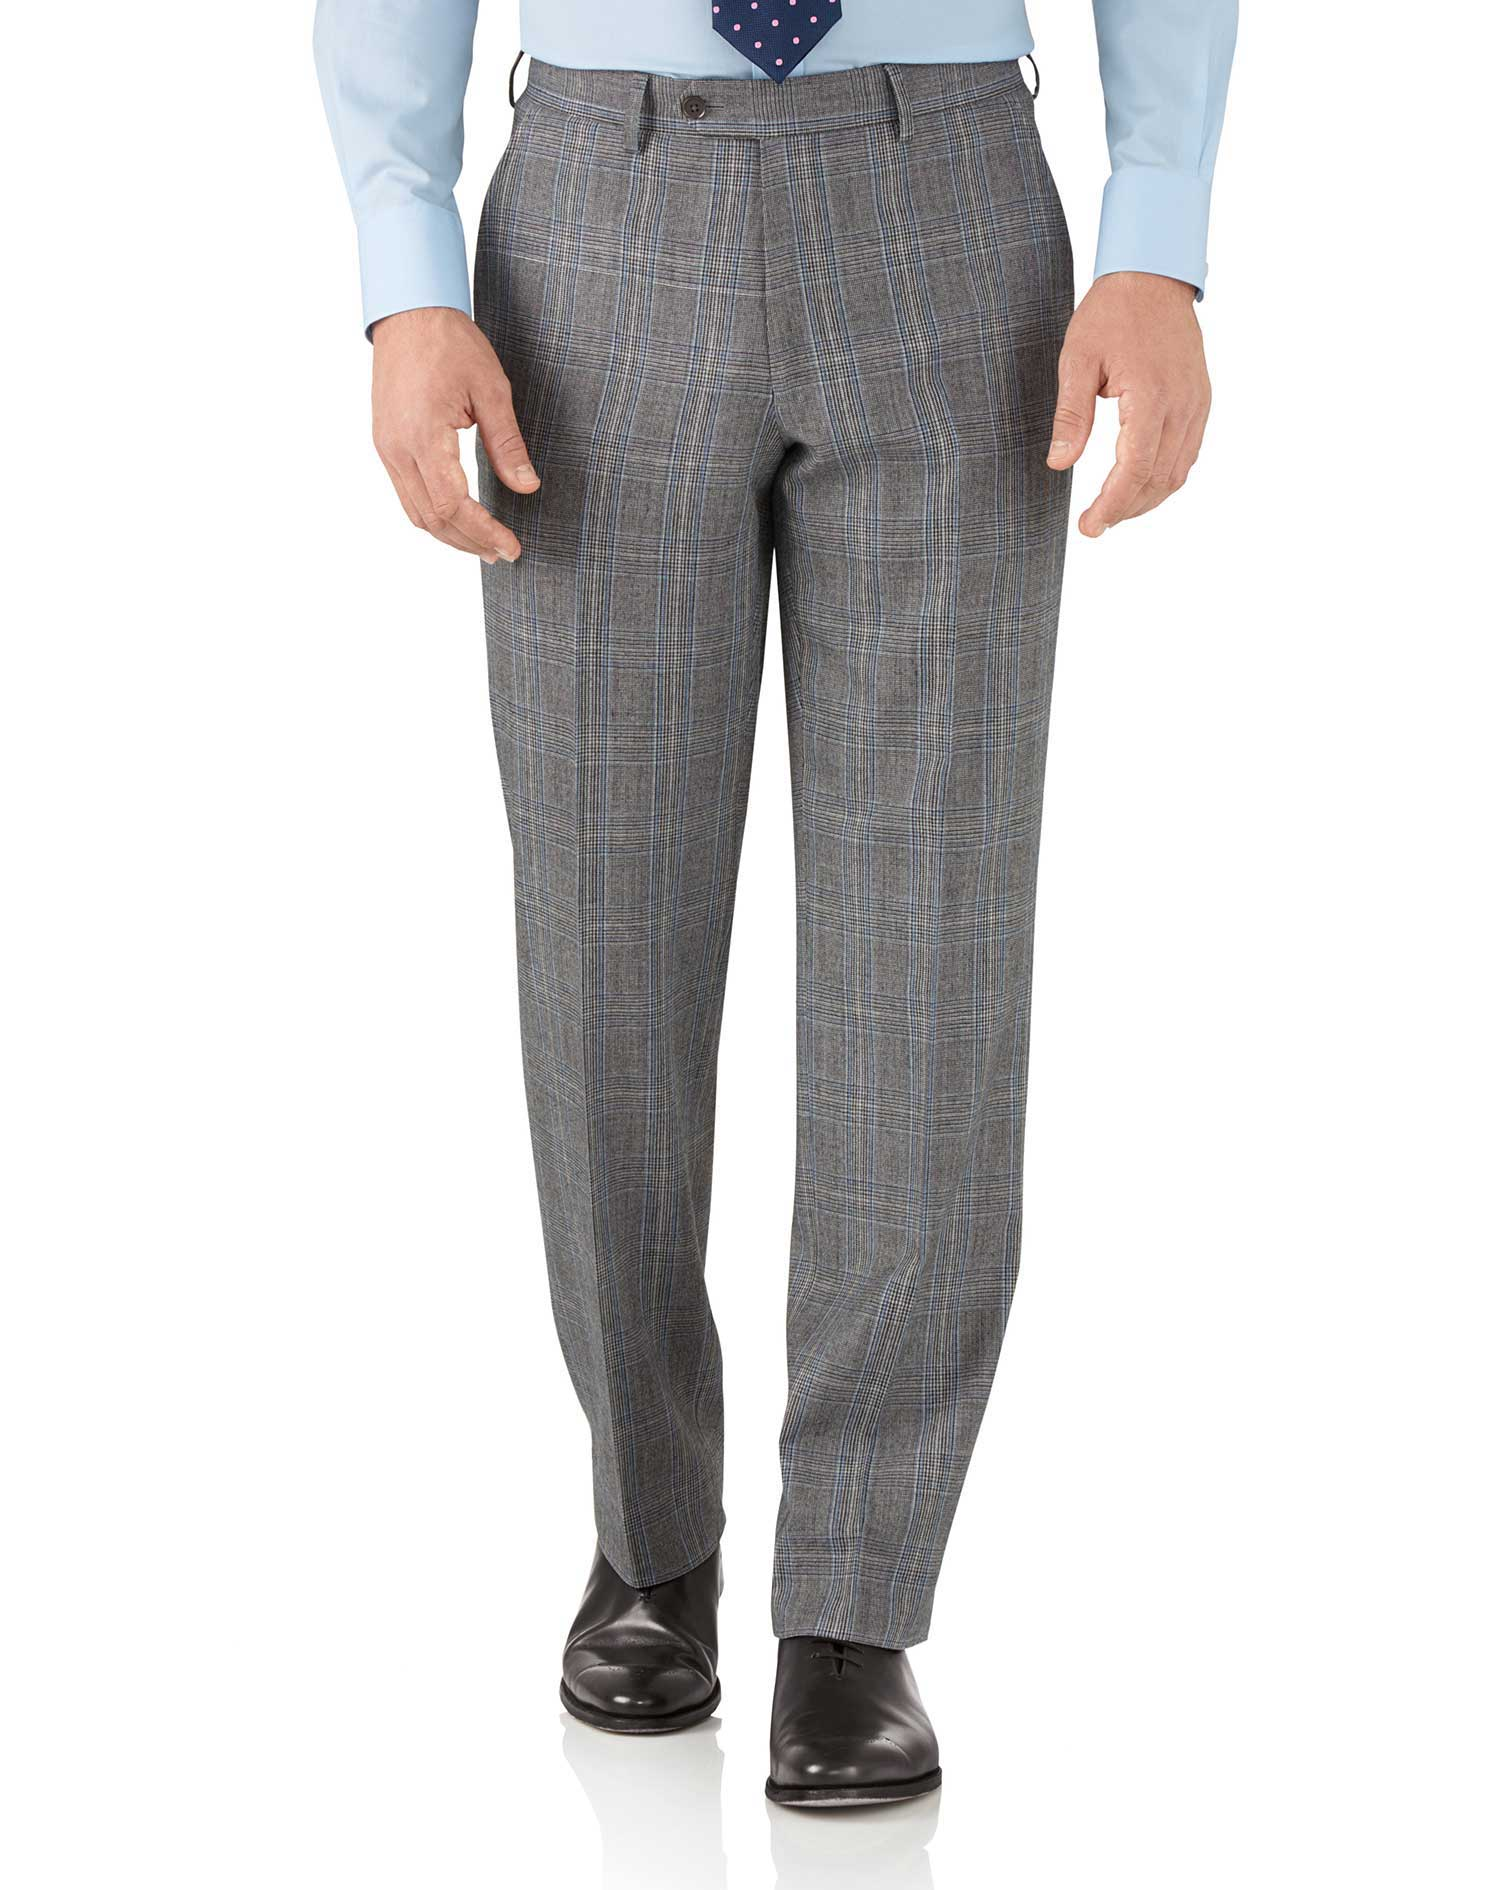 Silver Prince Of Wales Classic Fit Flannel Business Suit Trousers Size W40 L32 by Charles Tyrwhitt